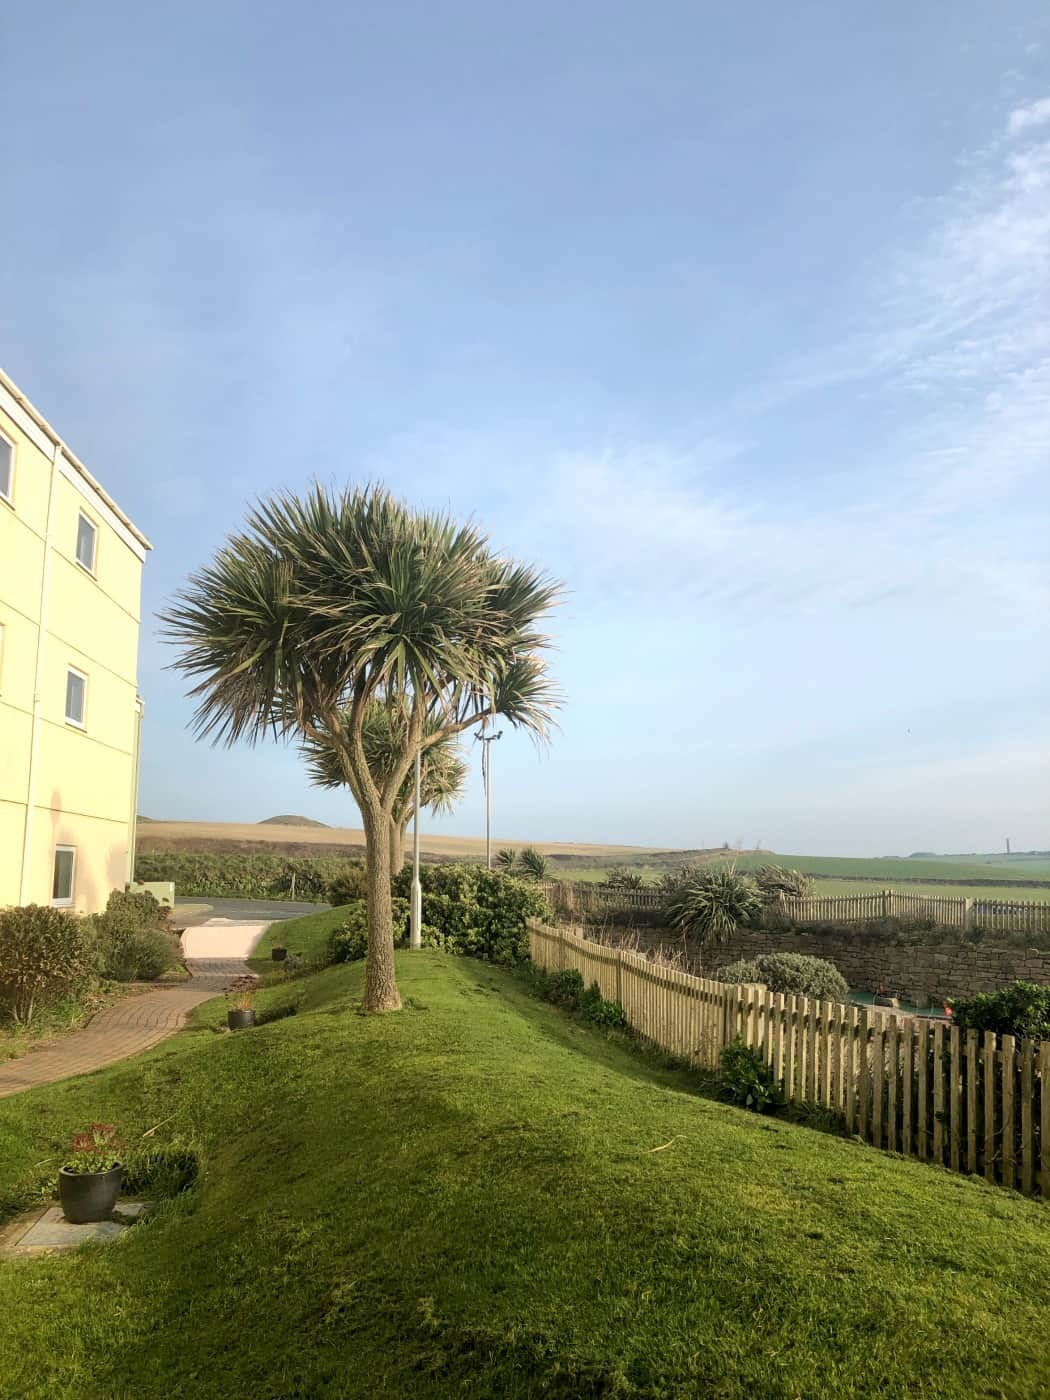 Rear view of Sands Resort Hotel and Spa, Newquay Cornwall